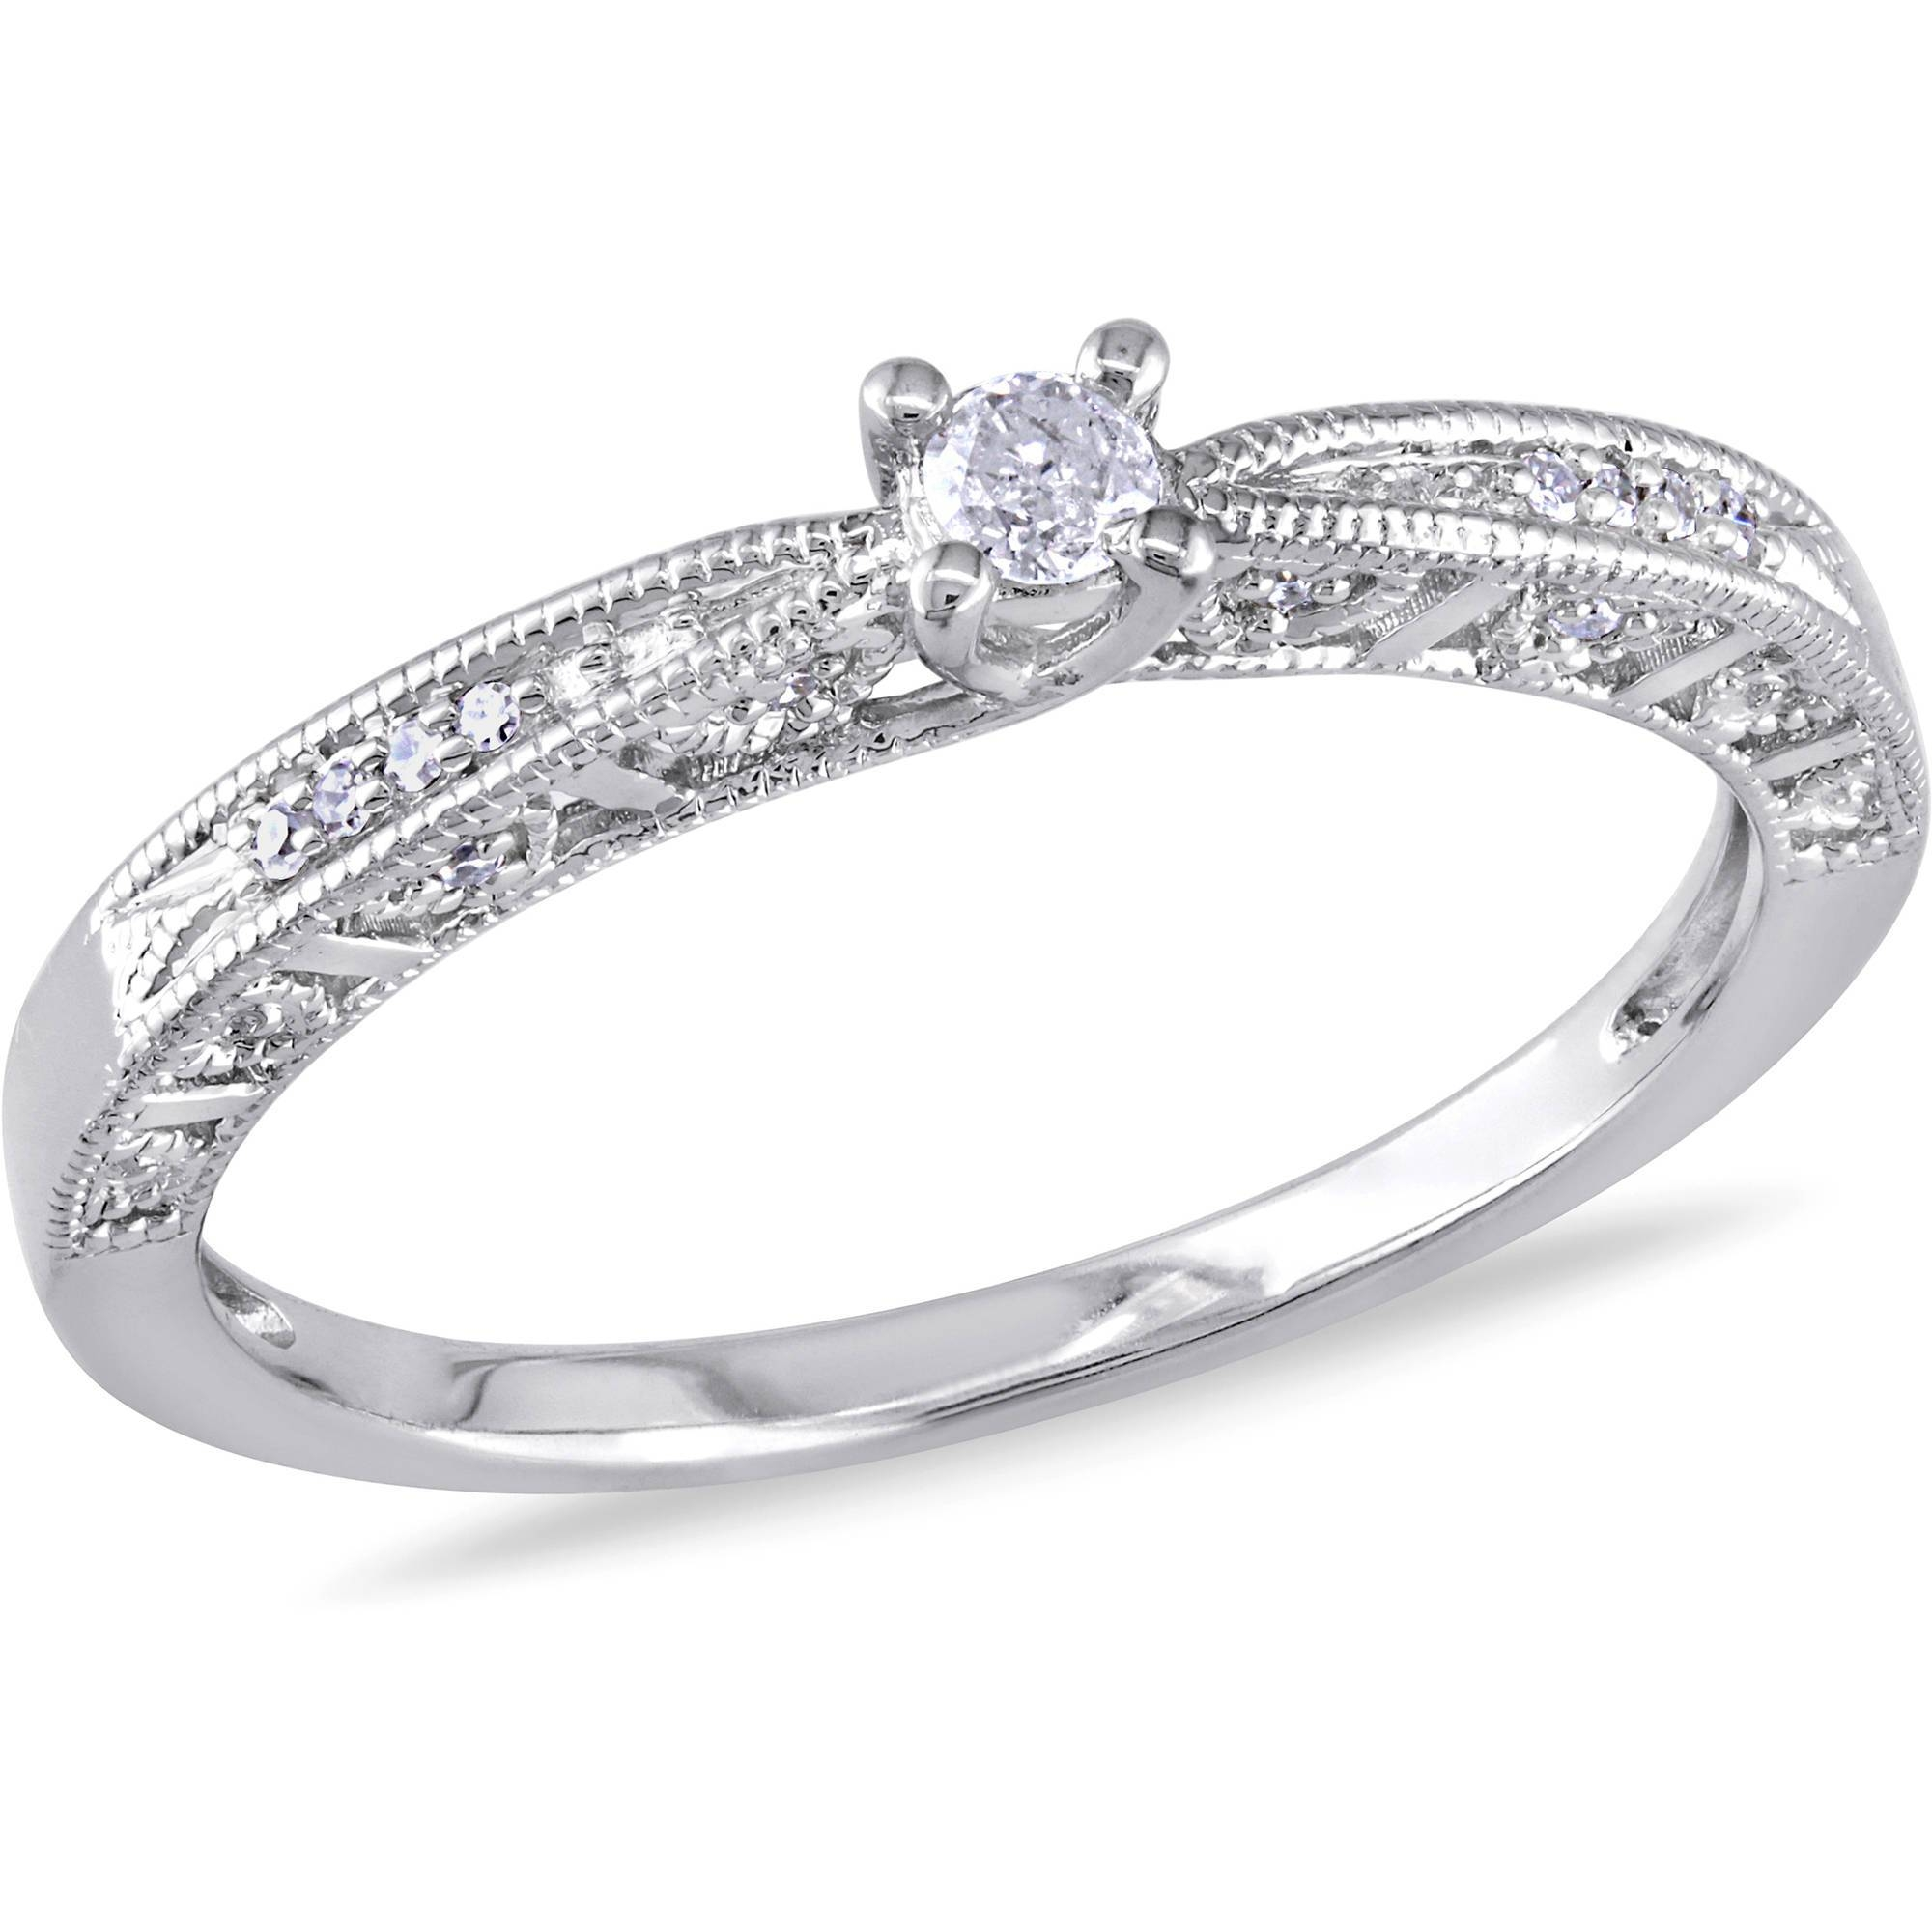 Miabella 1/10 Carat T.w. Diamond Sterling Silver Engagement Ring Within Walmart Engagement Rings (Gallery 5 of 15)